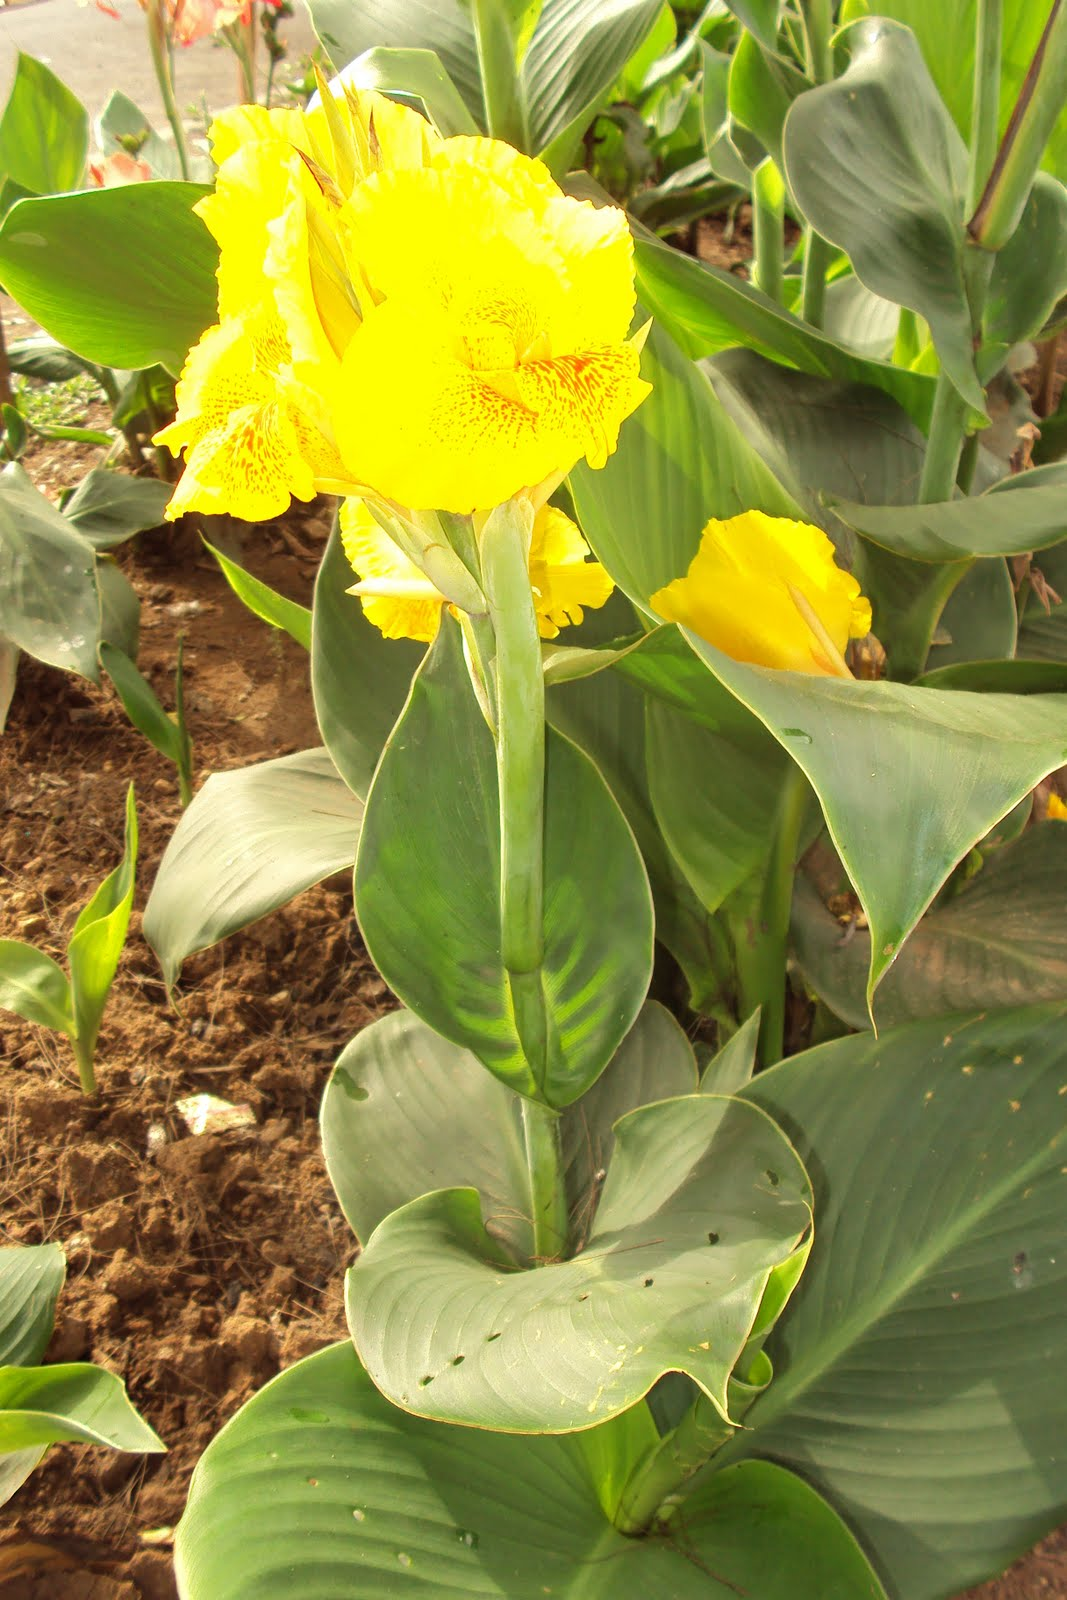 Orchids And Other Variety Of Flowers: Bandera Española